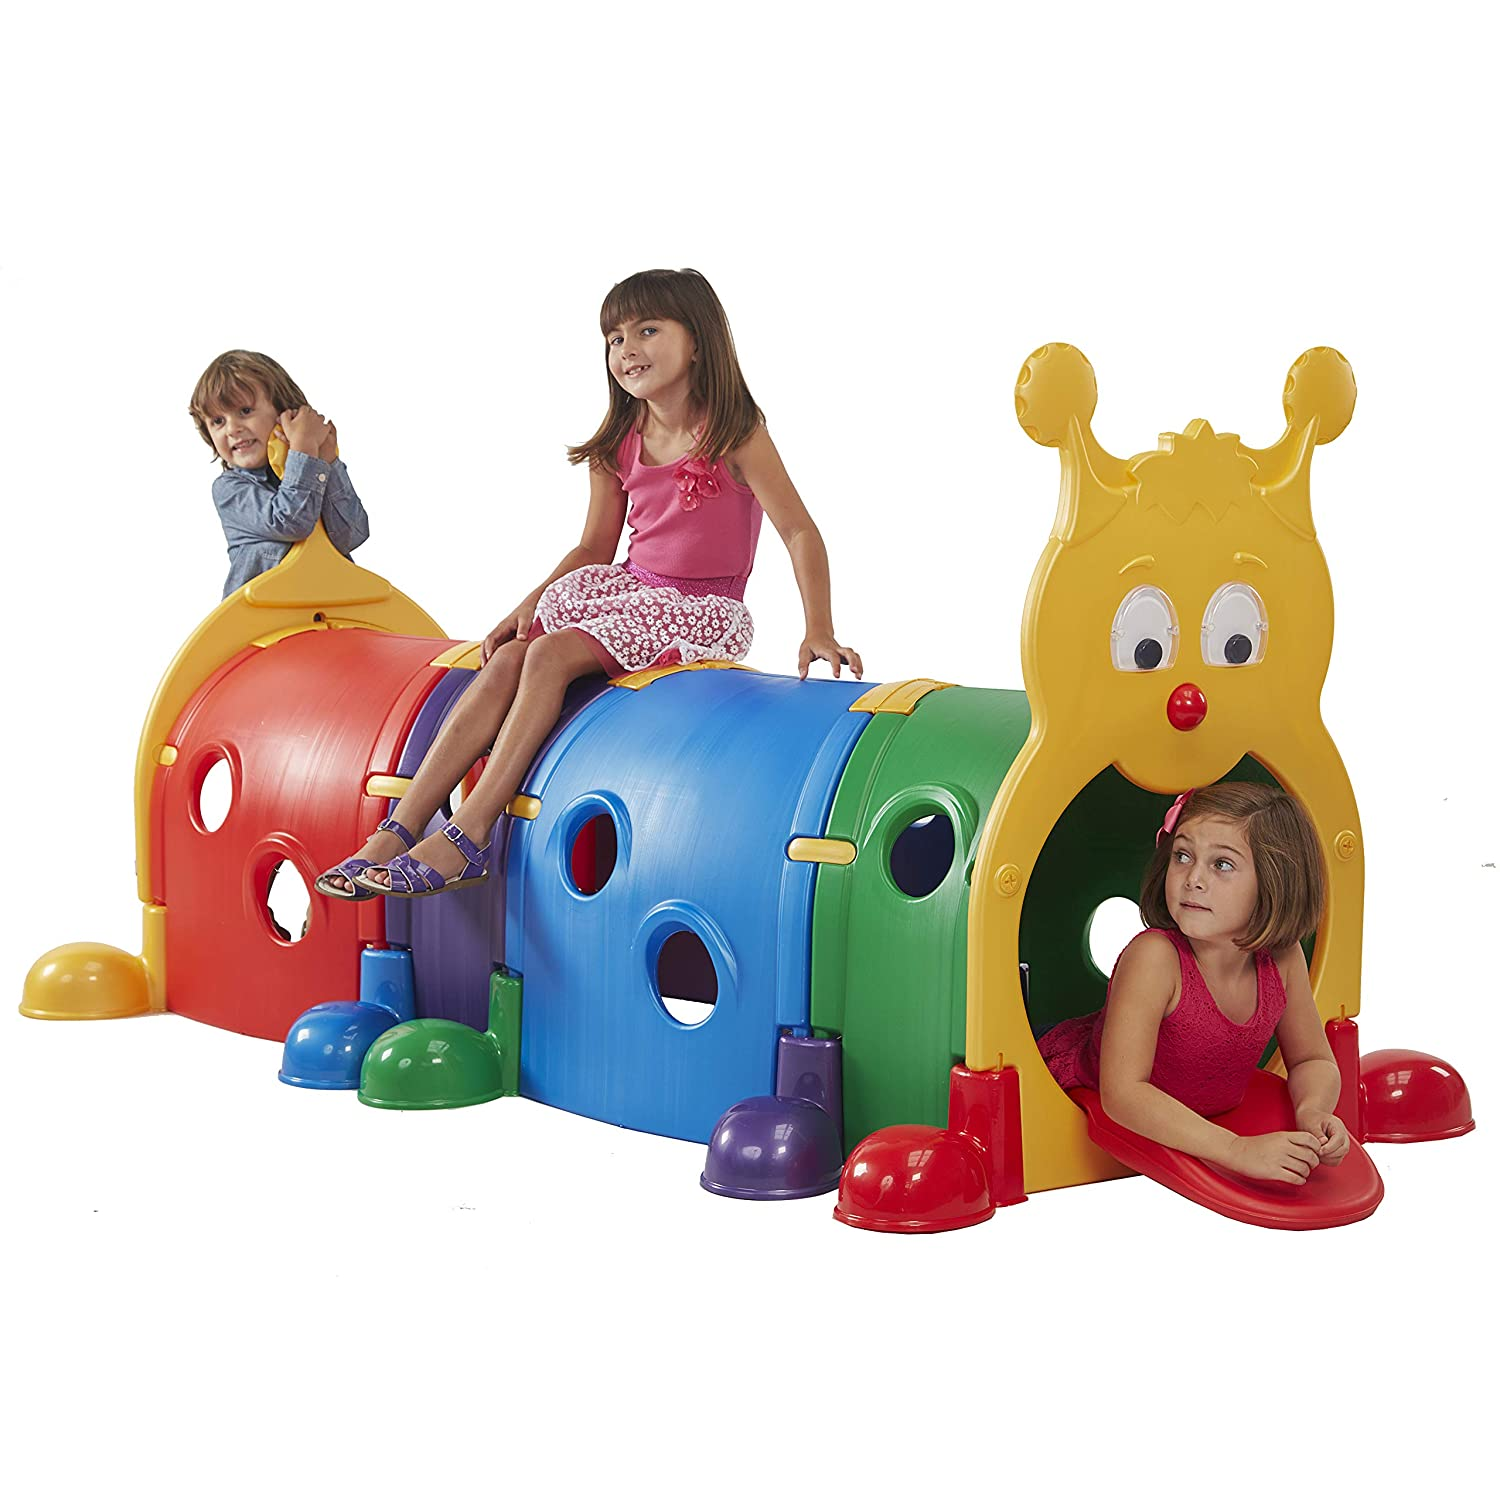 quality design 32e08 47258 ECR4Kids GUS Climb-N-Crawl Caterpillar Tunnel, Indoor and Outdoor Fun Kids'  Play Structure, Expandable with Other Sets, Certified and Safe, Ready to ...